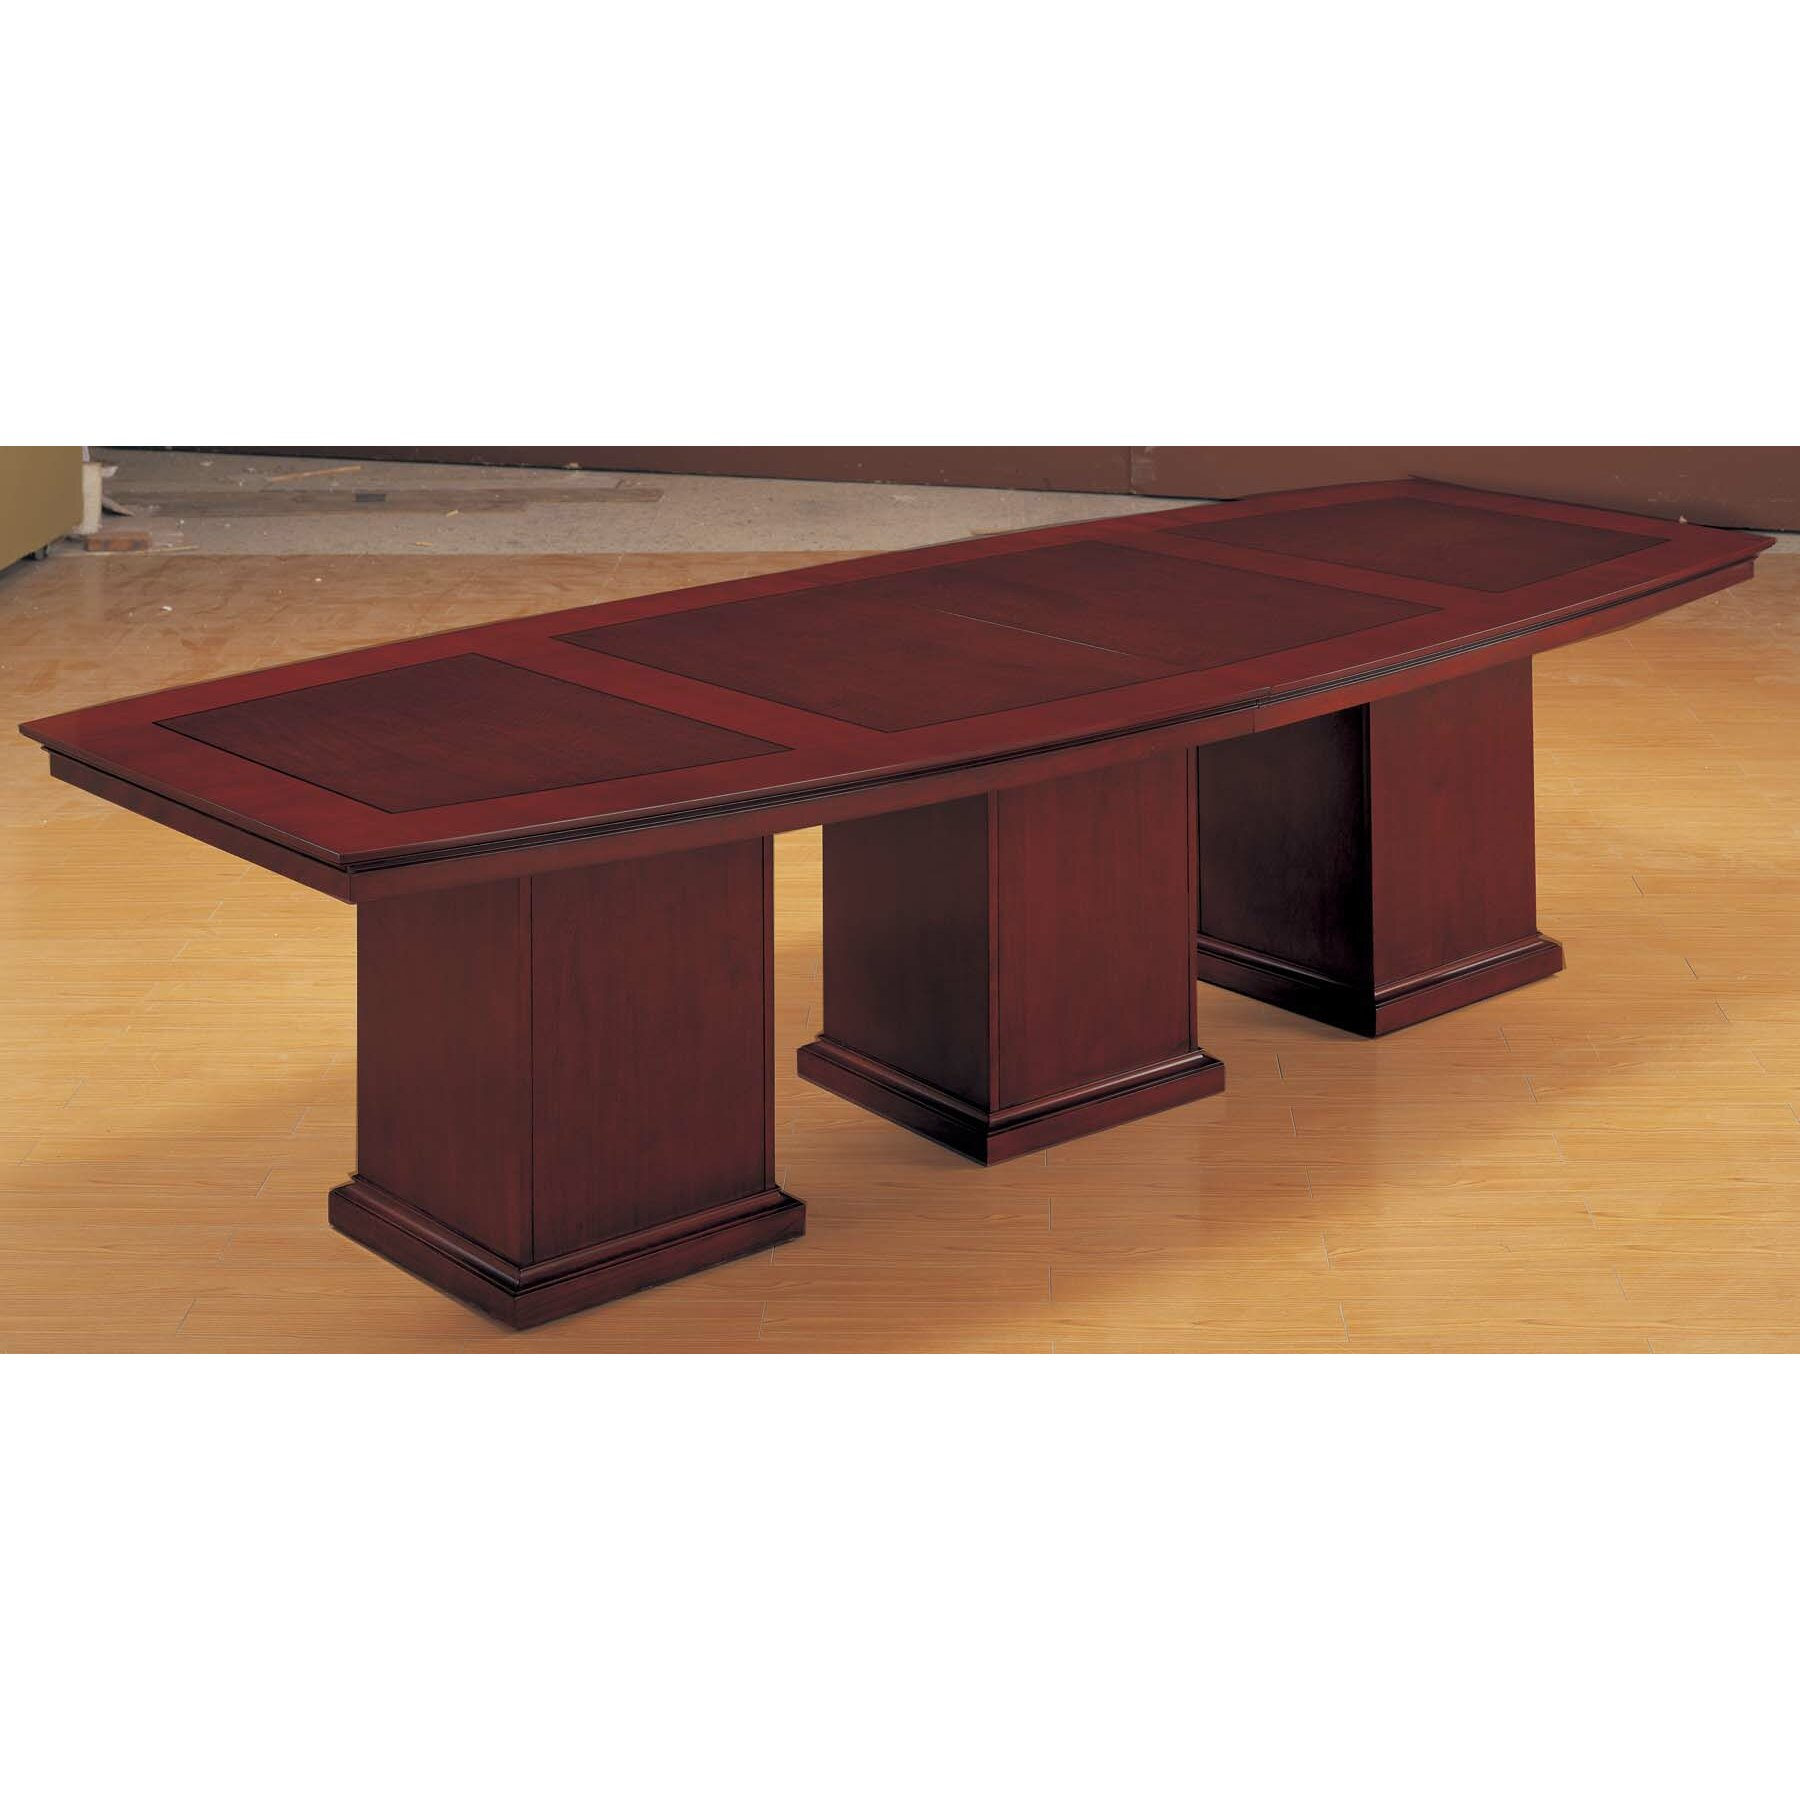 Flexsteel contract del mar 12 39 boat shaped conference for 12 conference table